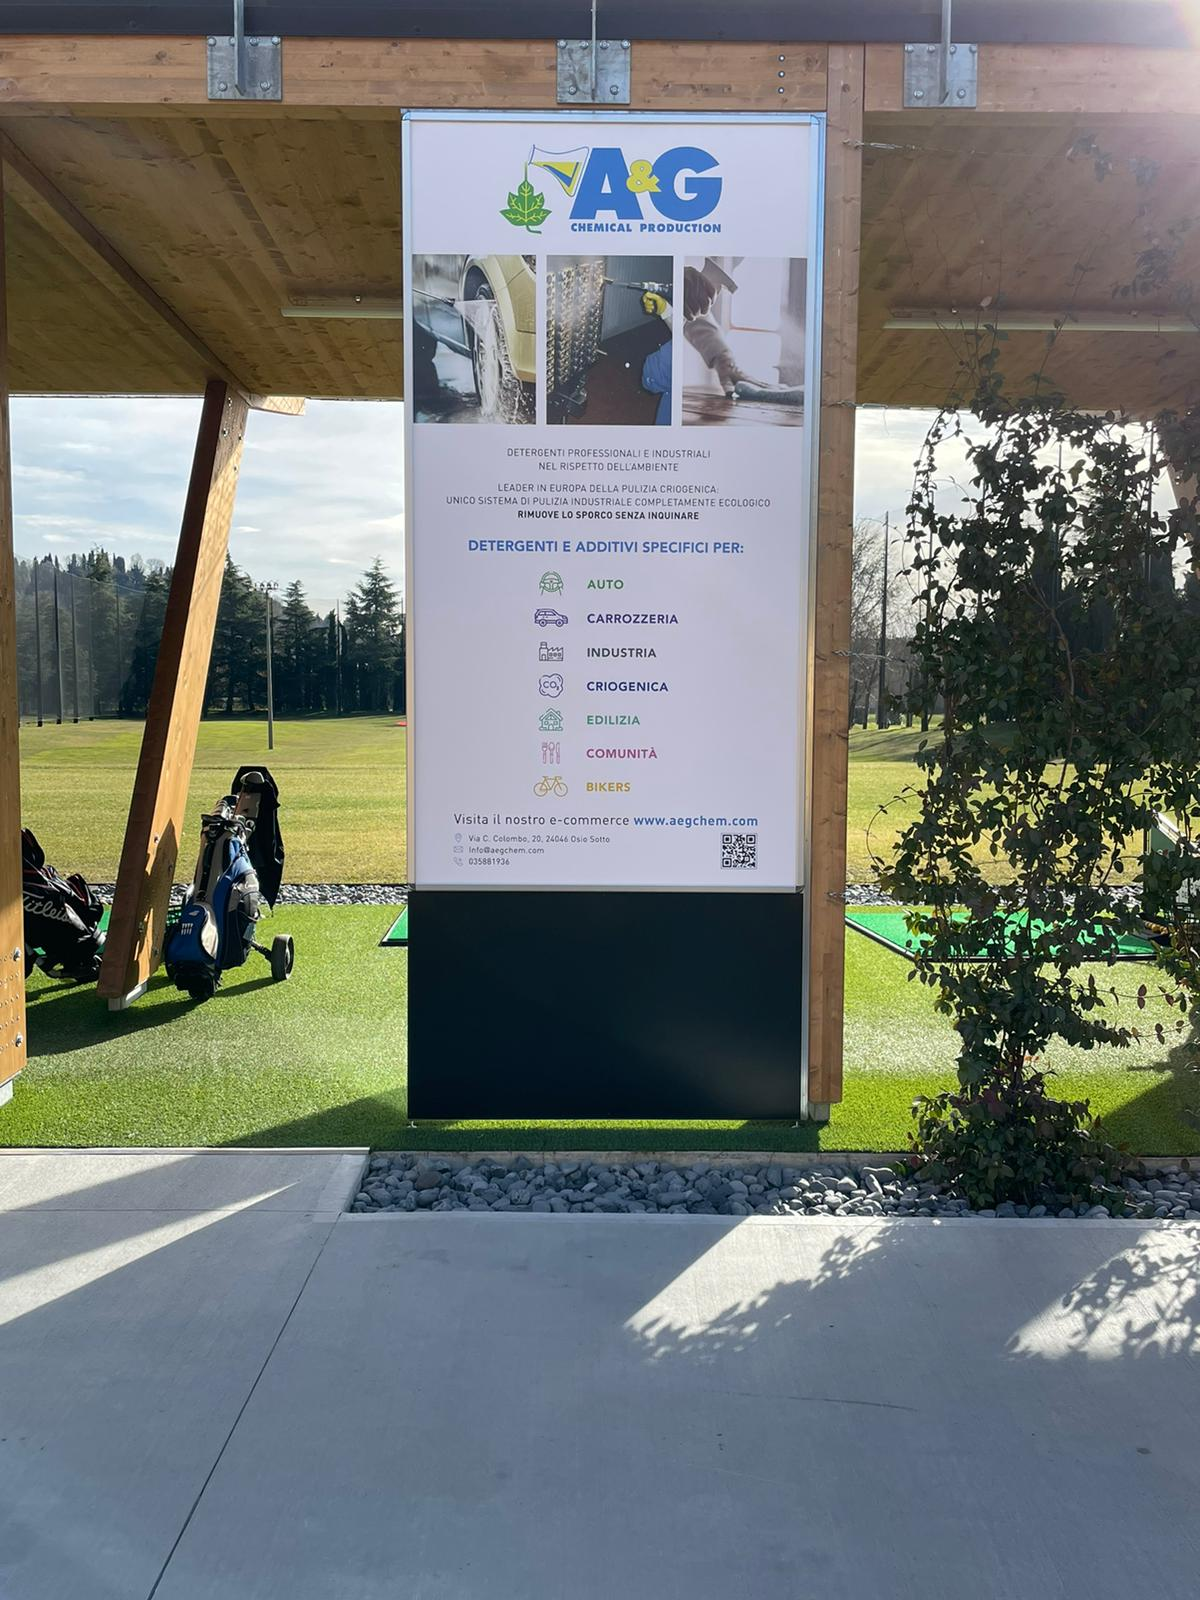 A&G for ai colli di bergamo golf